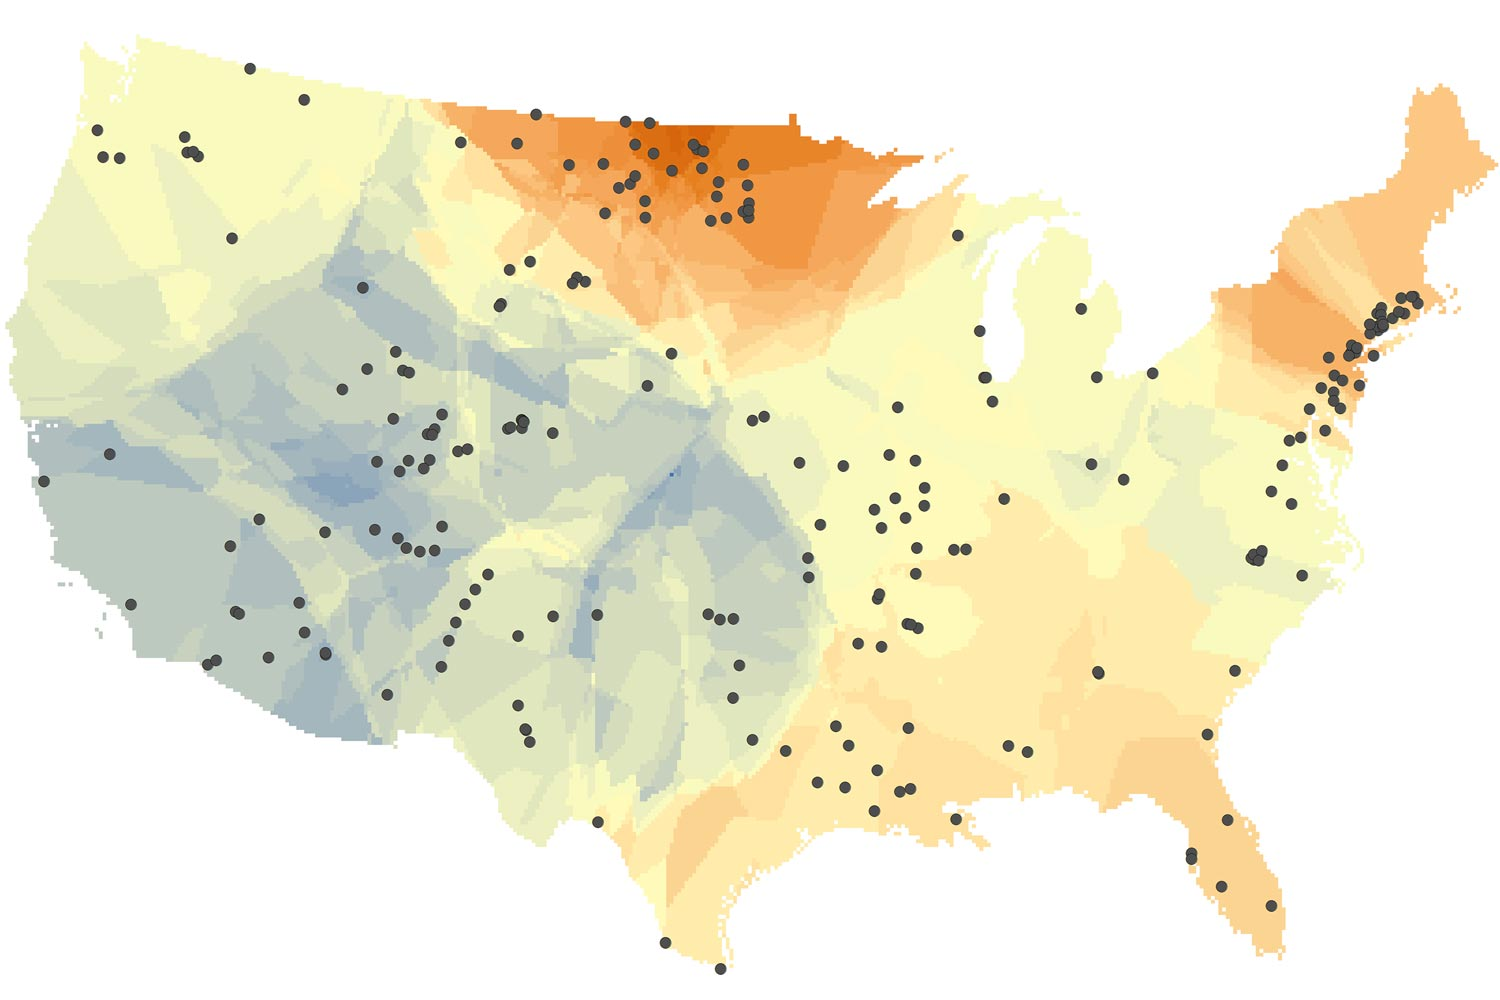 Changes in the salt content of fresh water in rivers and streams over the past half-century: warmer colors indicate increasing salinity; cooler colors decreasing salinity. Black dots represent U.S.G.S. monitoring sites. (Illustration: Ryan Utz, Chatham University)